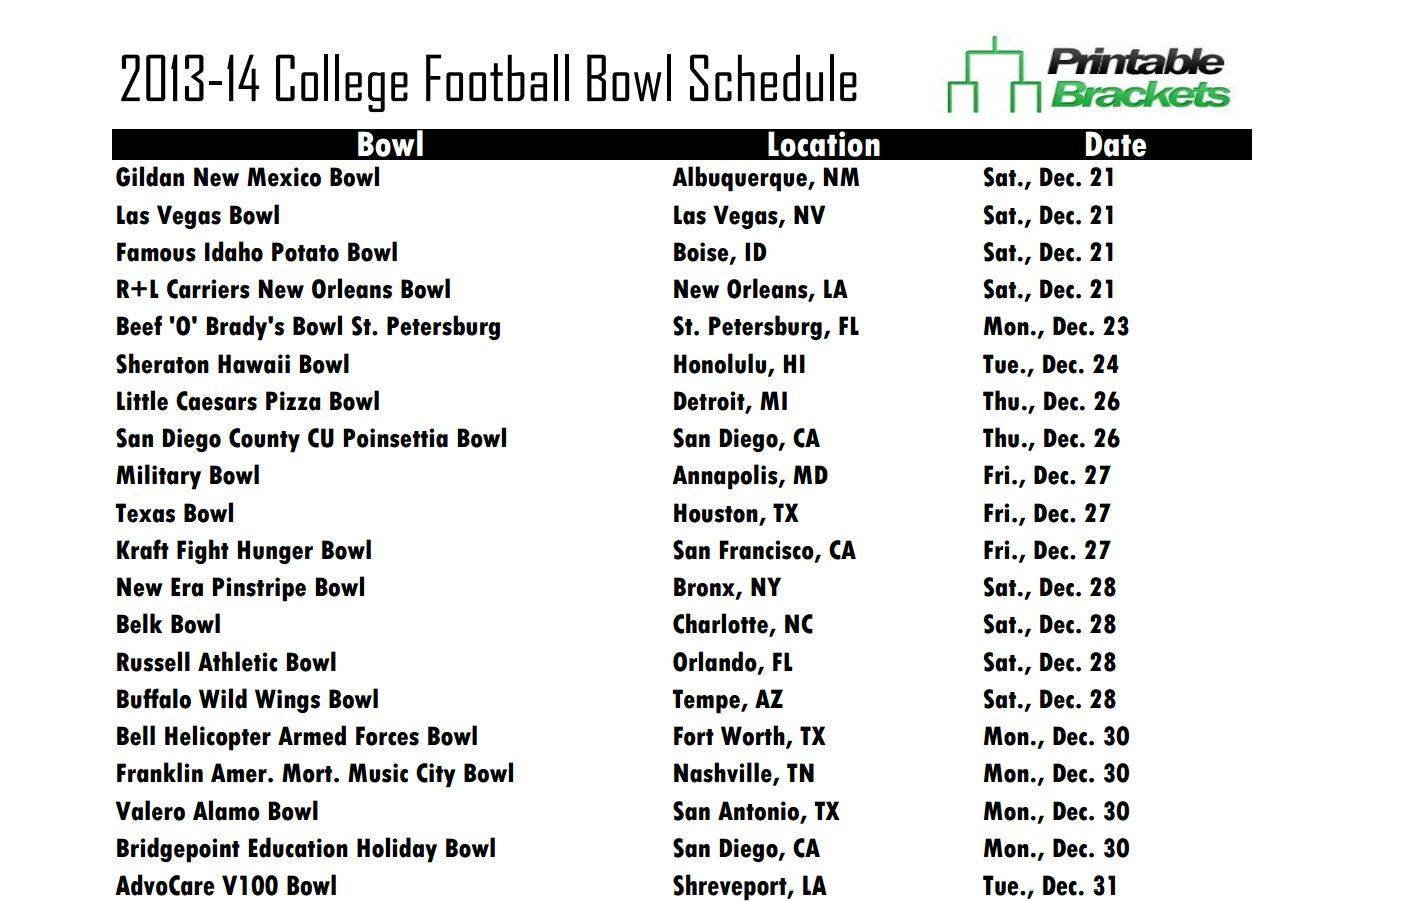 2015 college playoff schedule msn ncaaf